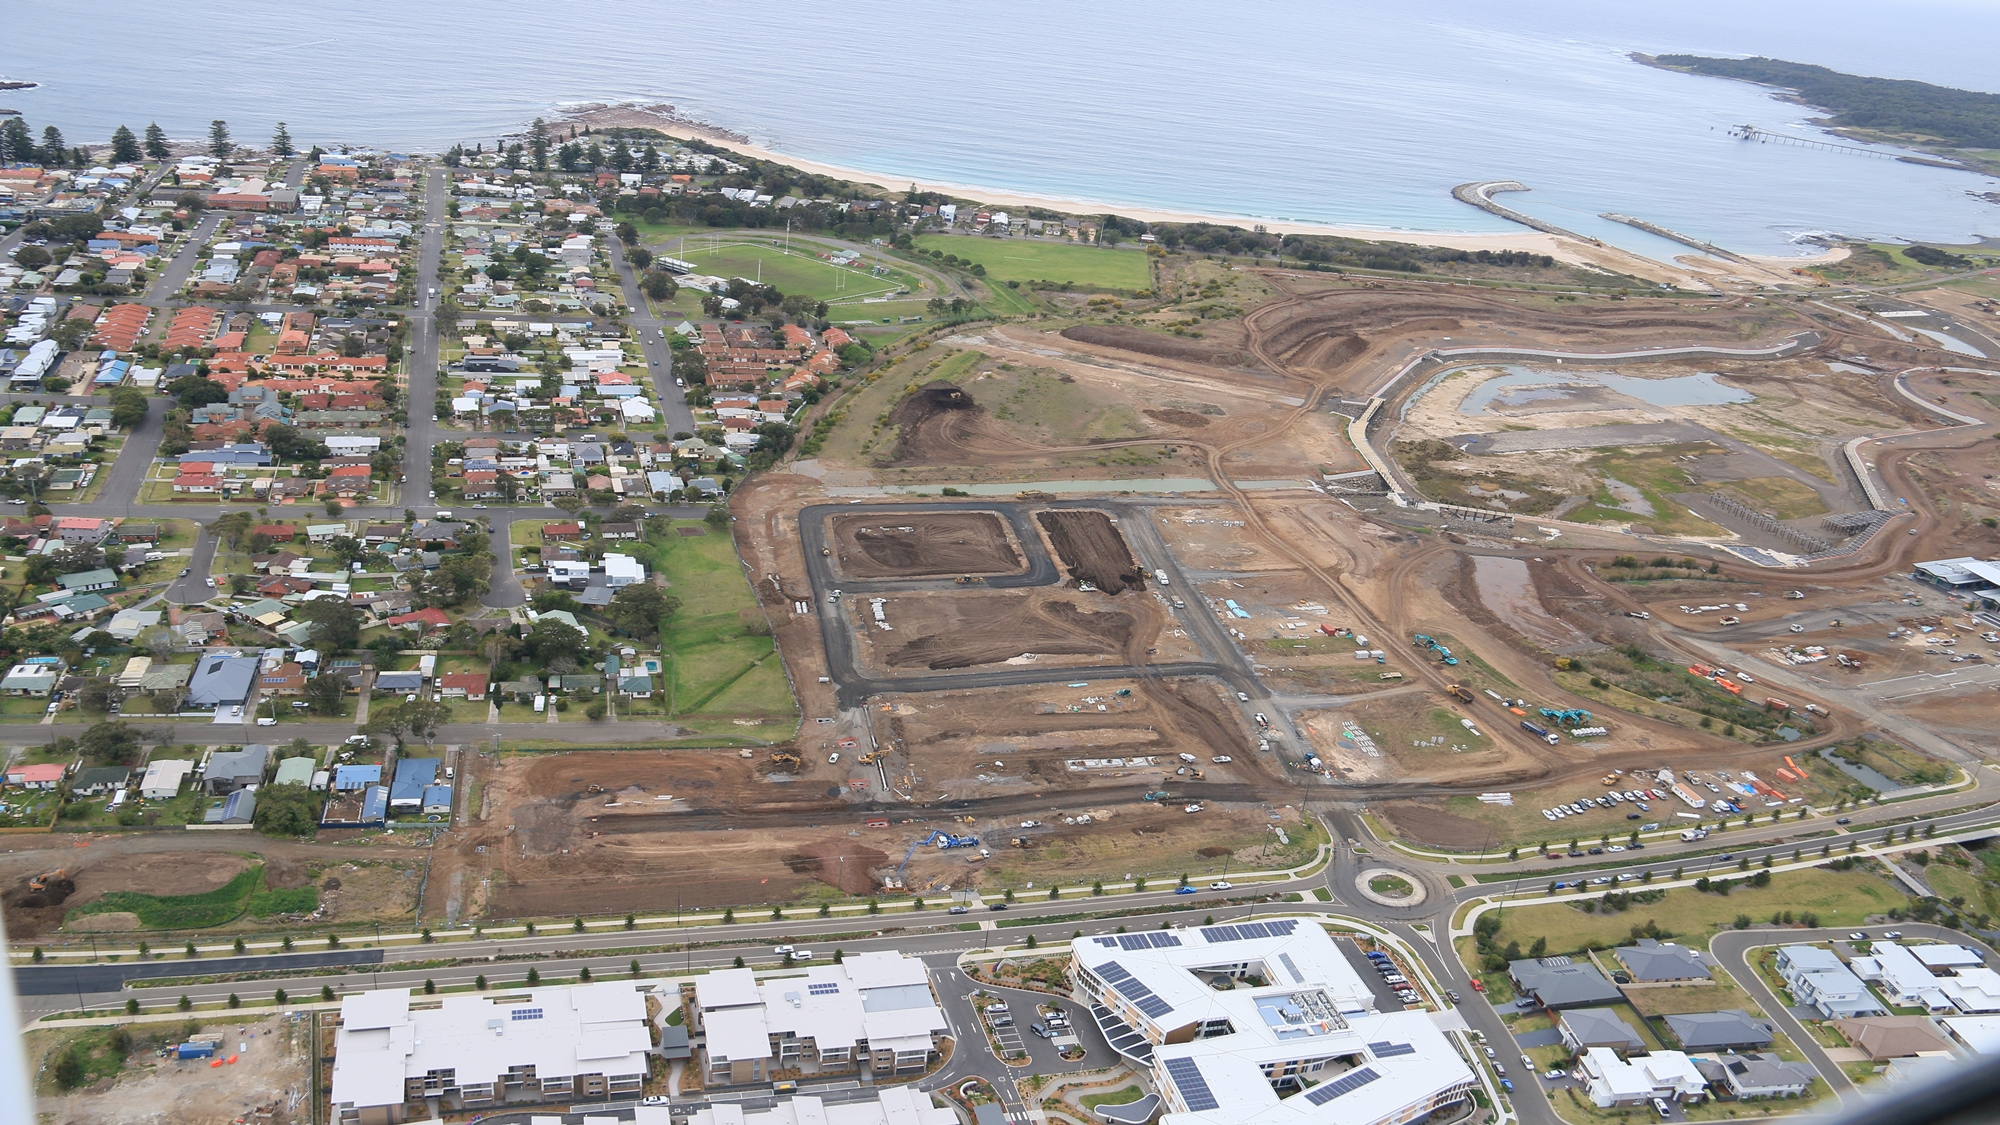 The Waterfront Construction Aerial Images September 2018